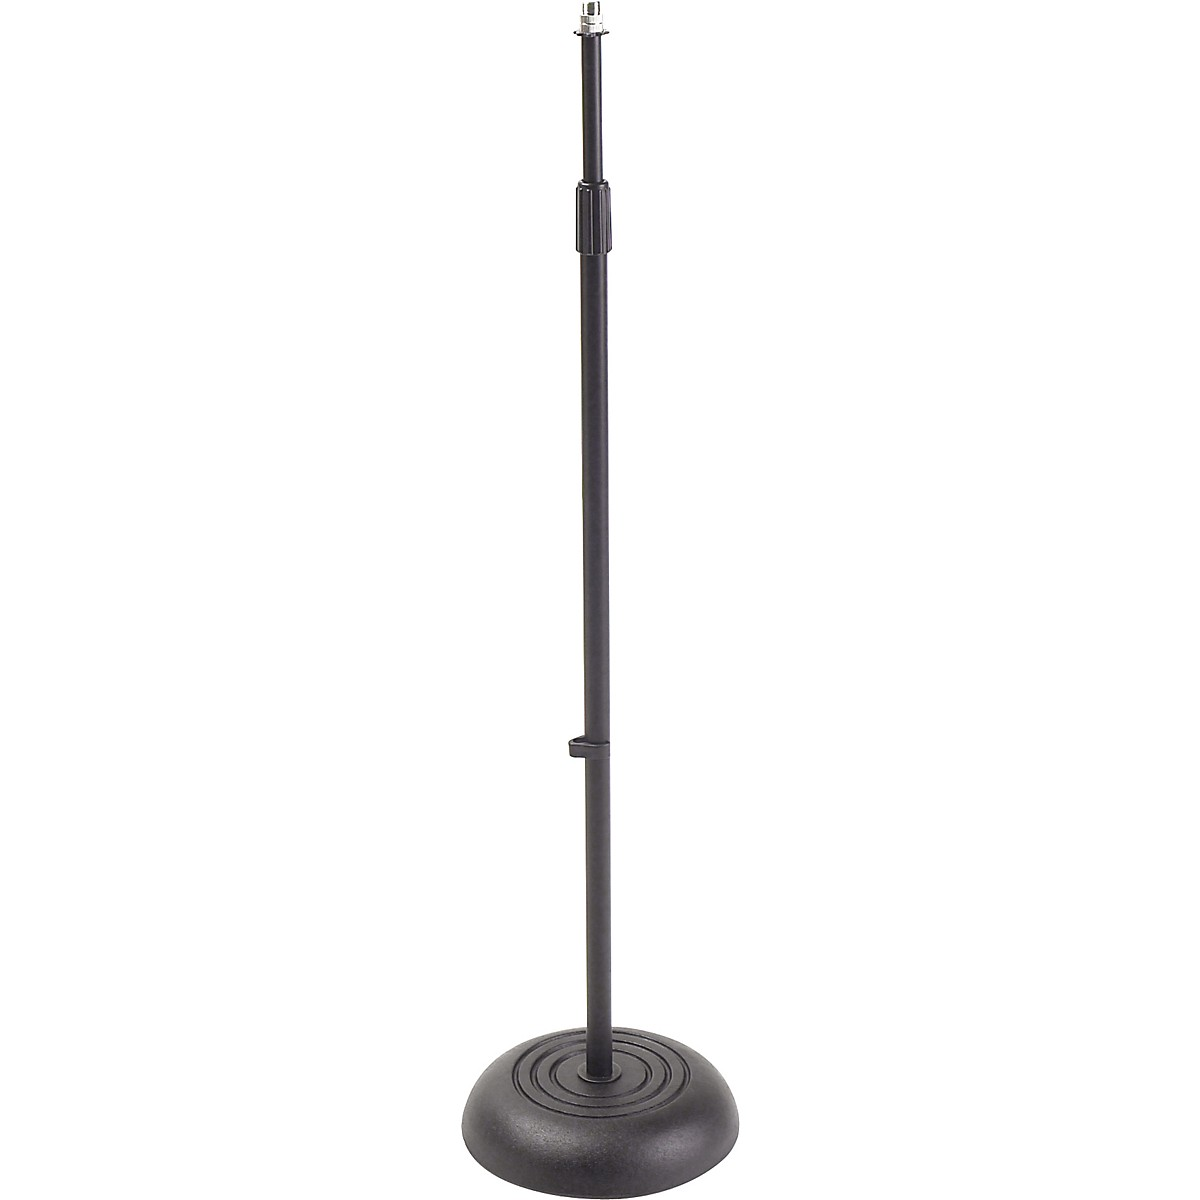 Proline MS235 Round Base Microphone Stand